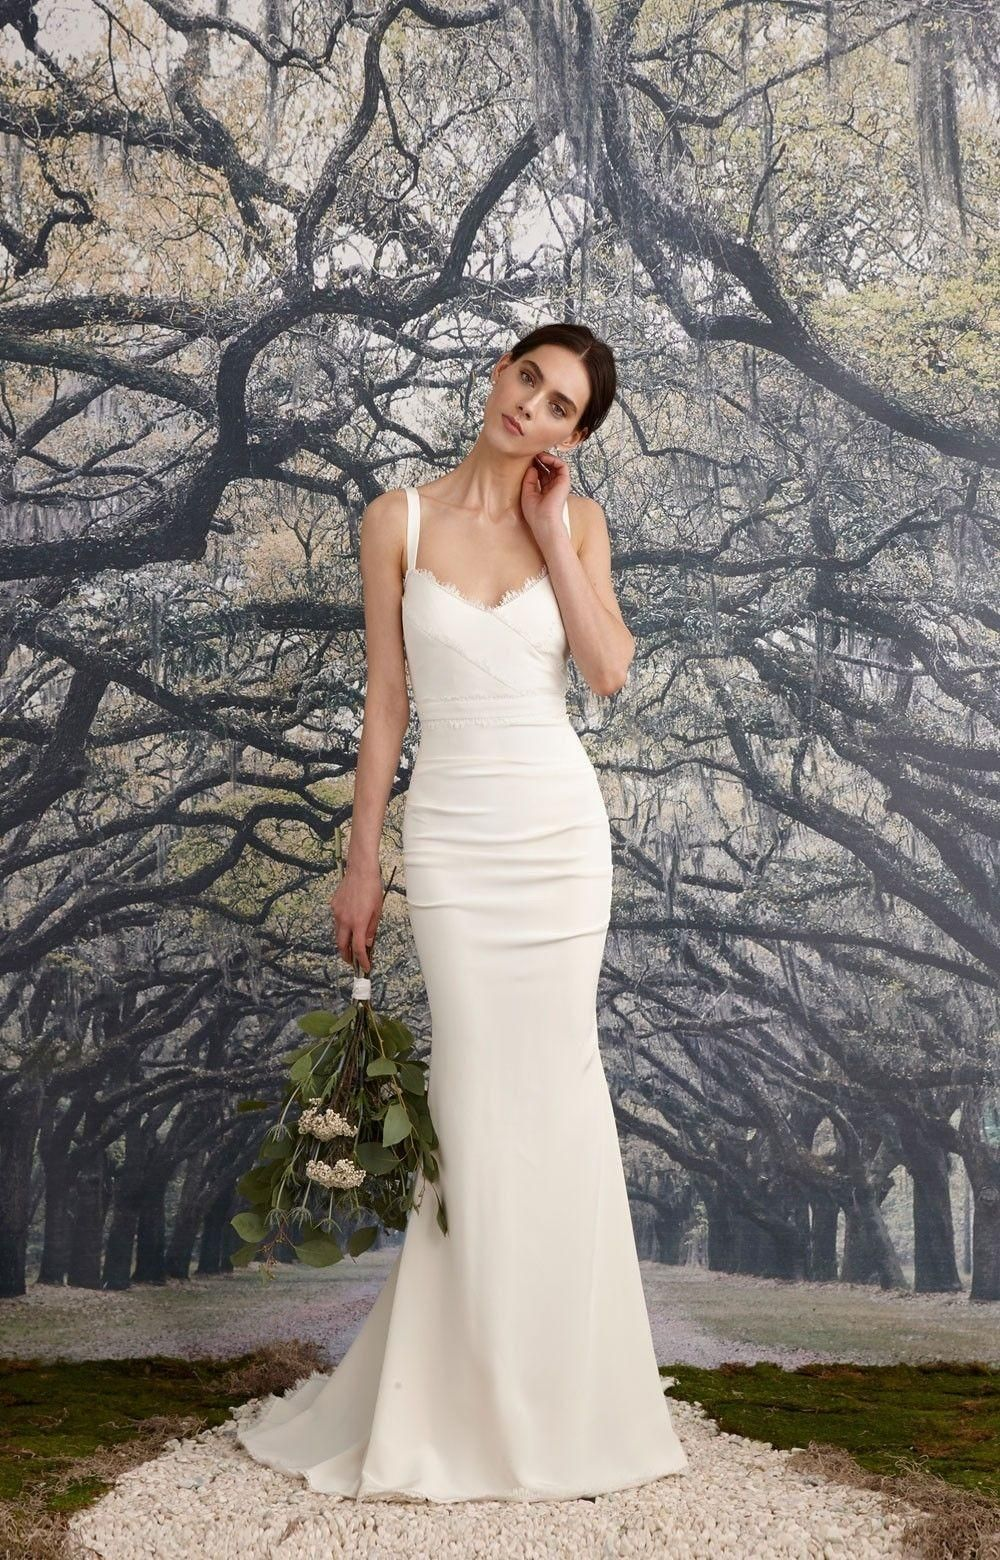 99c22352fc19 Nicole Miller Bridal Nicole Miller Tonya Stretch V Neck Gown Antique White  Women's Dress 2 Wedding Dress. Nicole Miller Bridal Nicole Miller Tonya  Stretch V ...